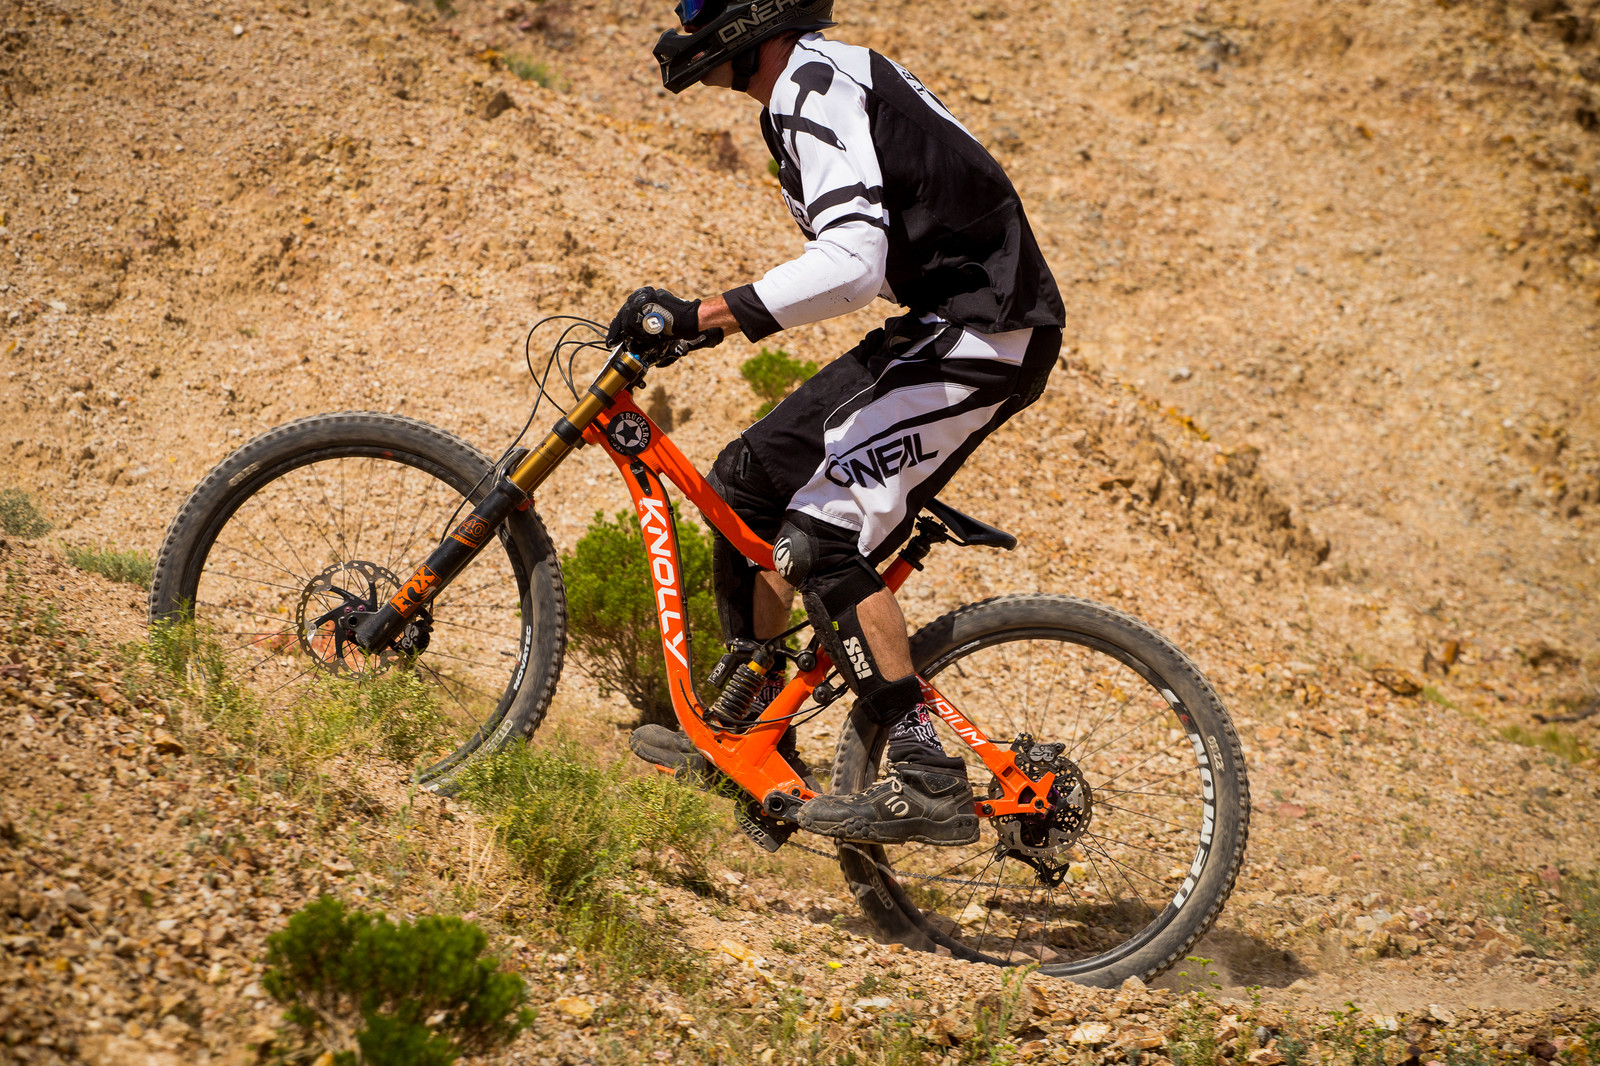 2017 Reaper Madness DH at Bootleg Canyon-46 - 2017 Reaper Madness DH Photos - Mountain Biking Pictures - Vital MTB